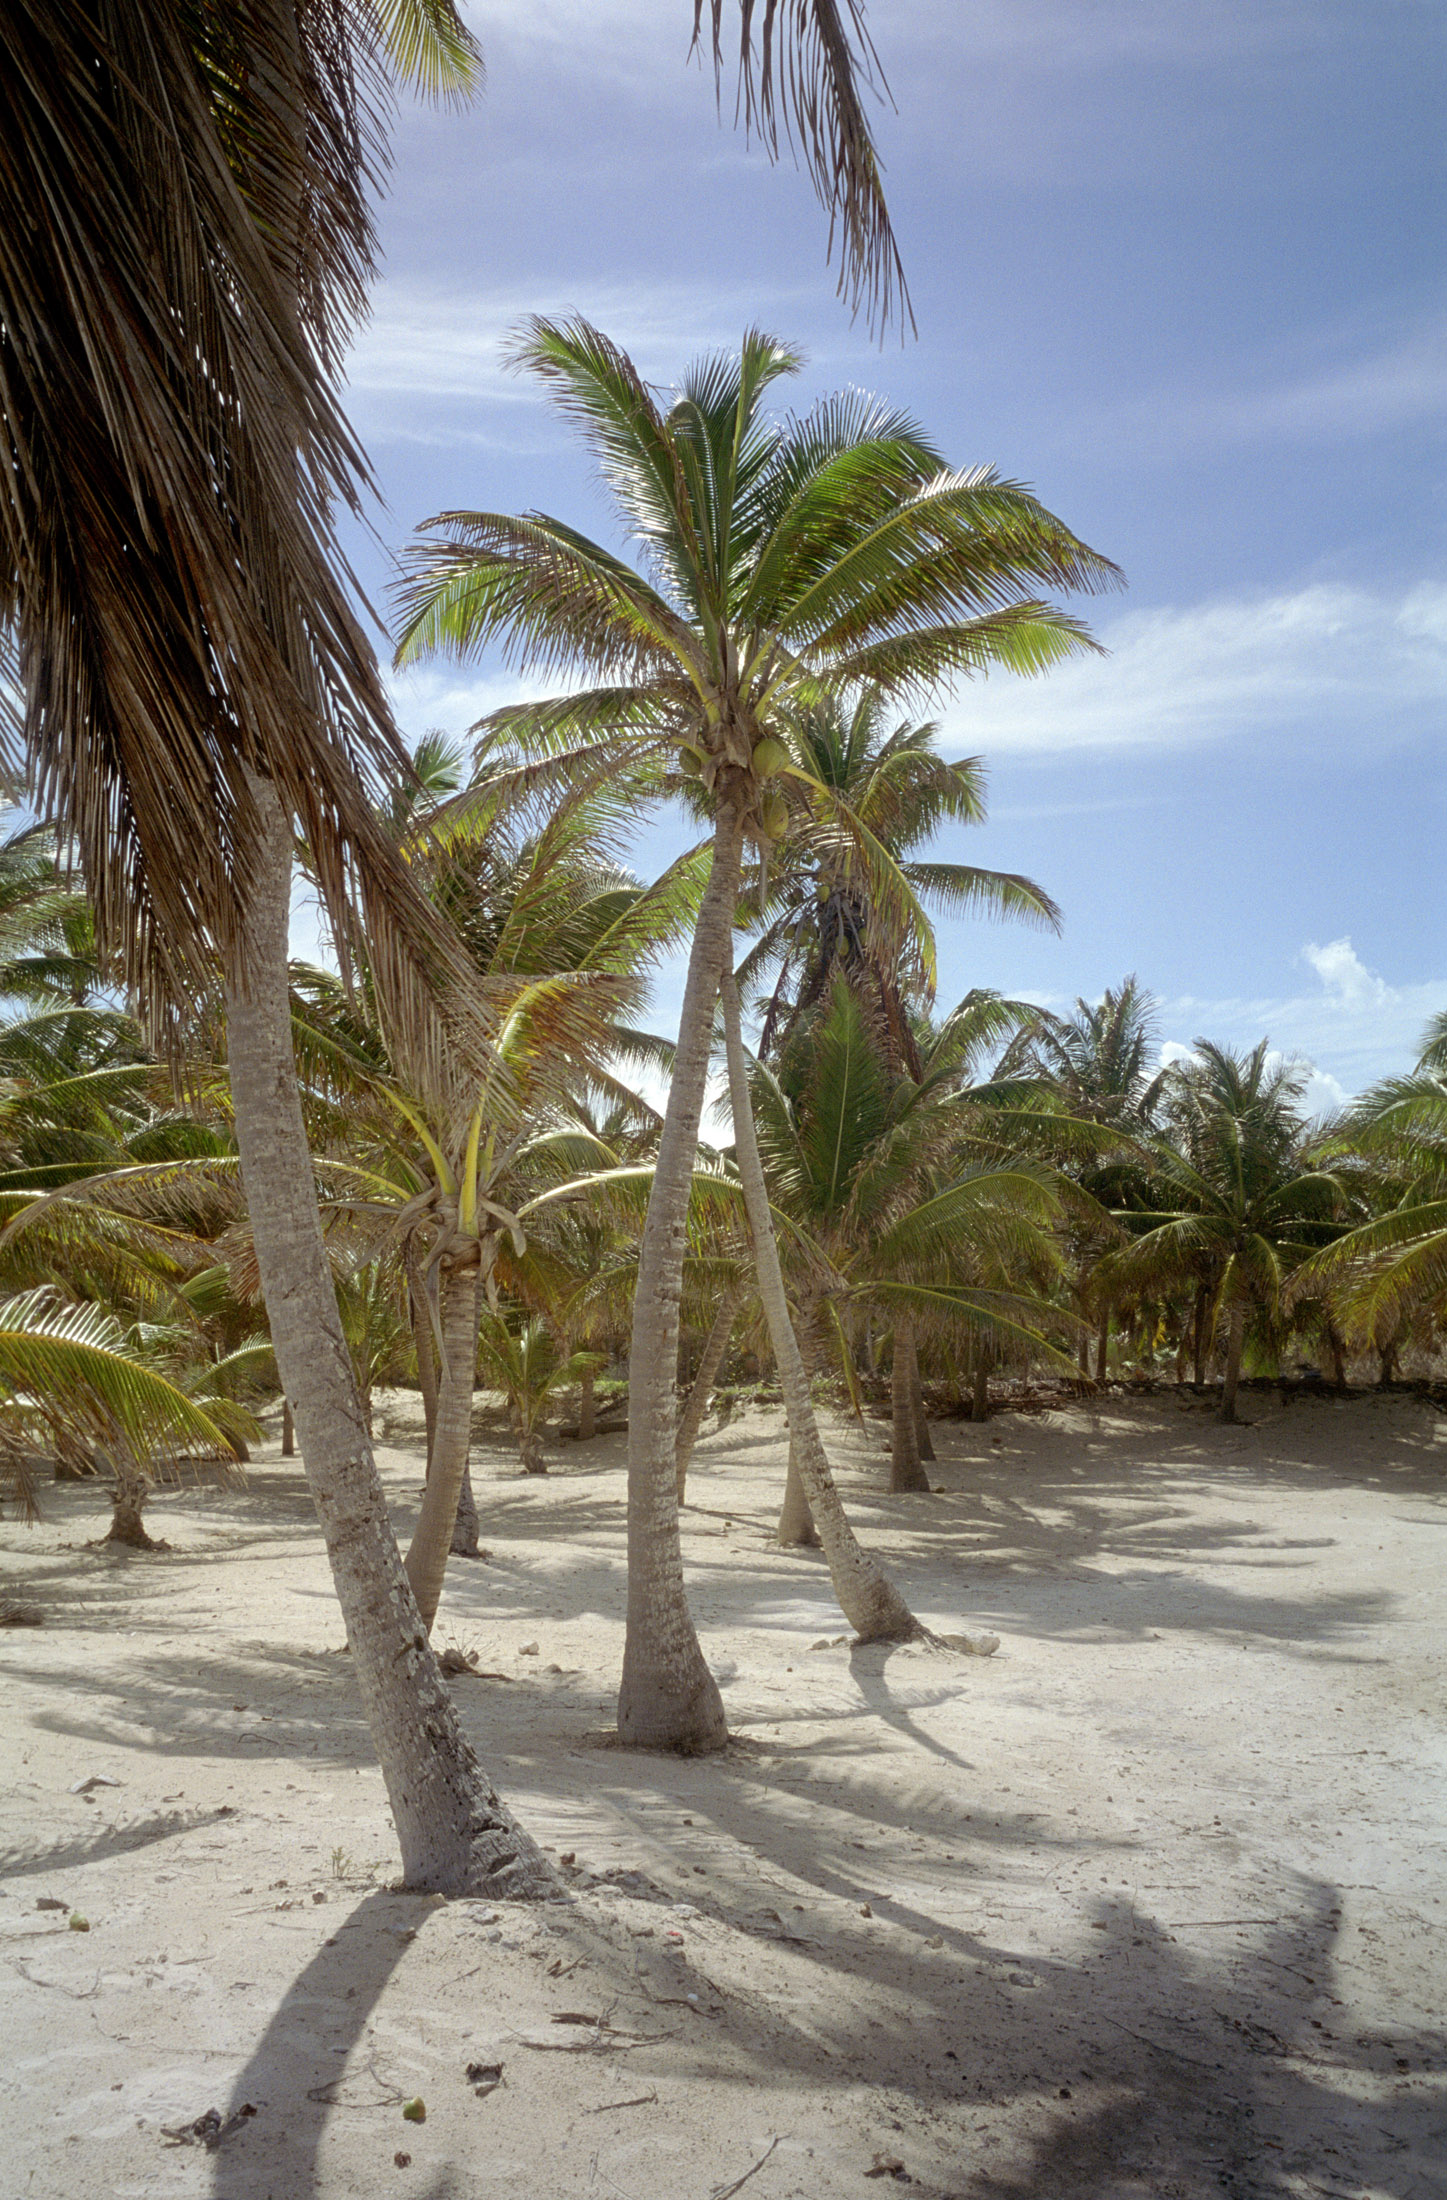 grove of palm trees in mexico on coral white sand